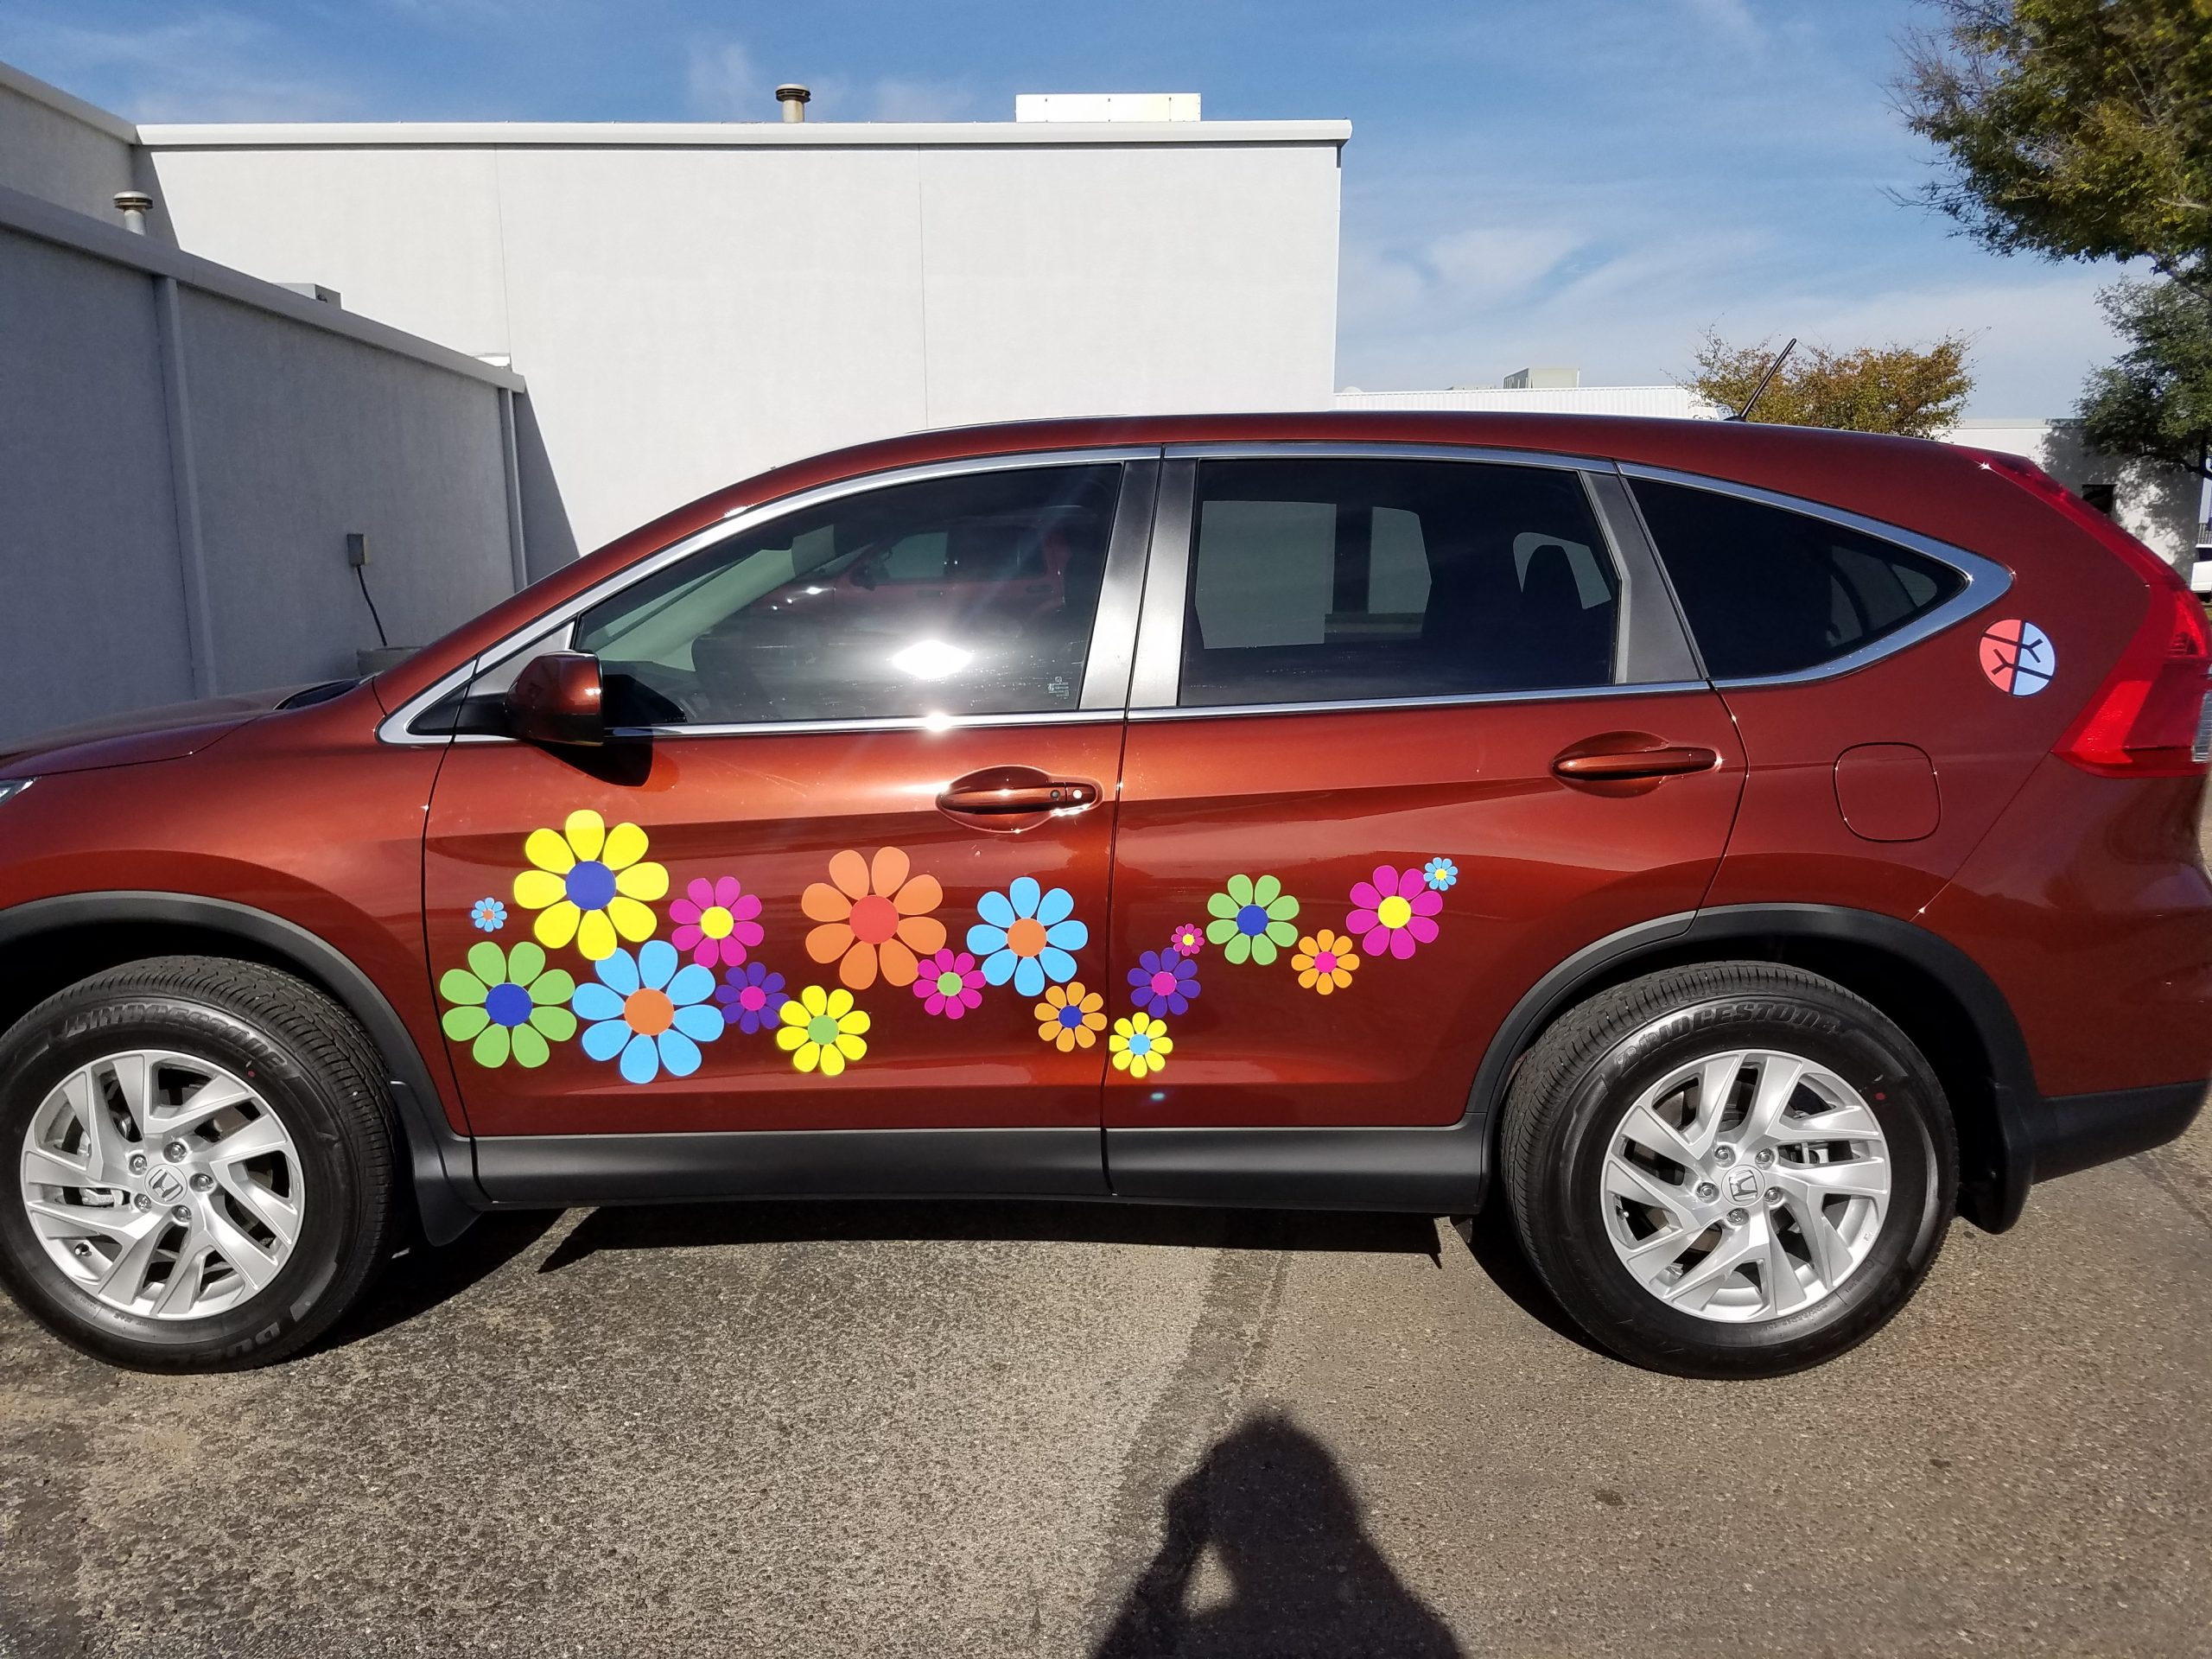 Red Honda Odessy Van with Flower Power Decals